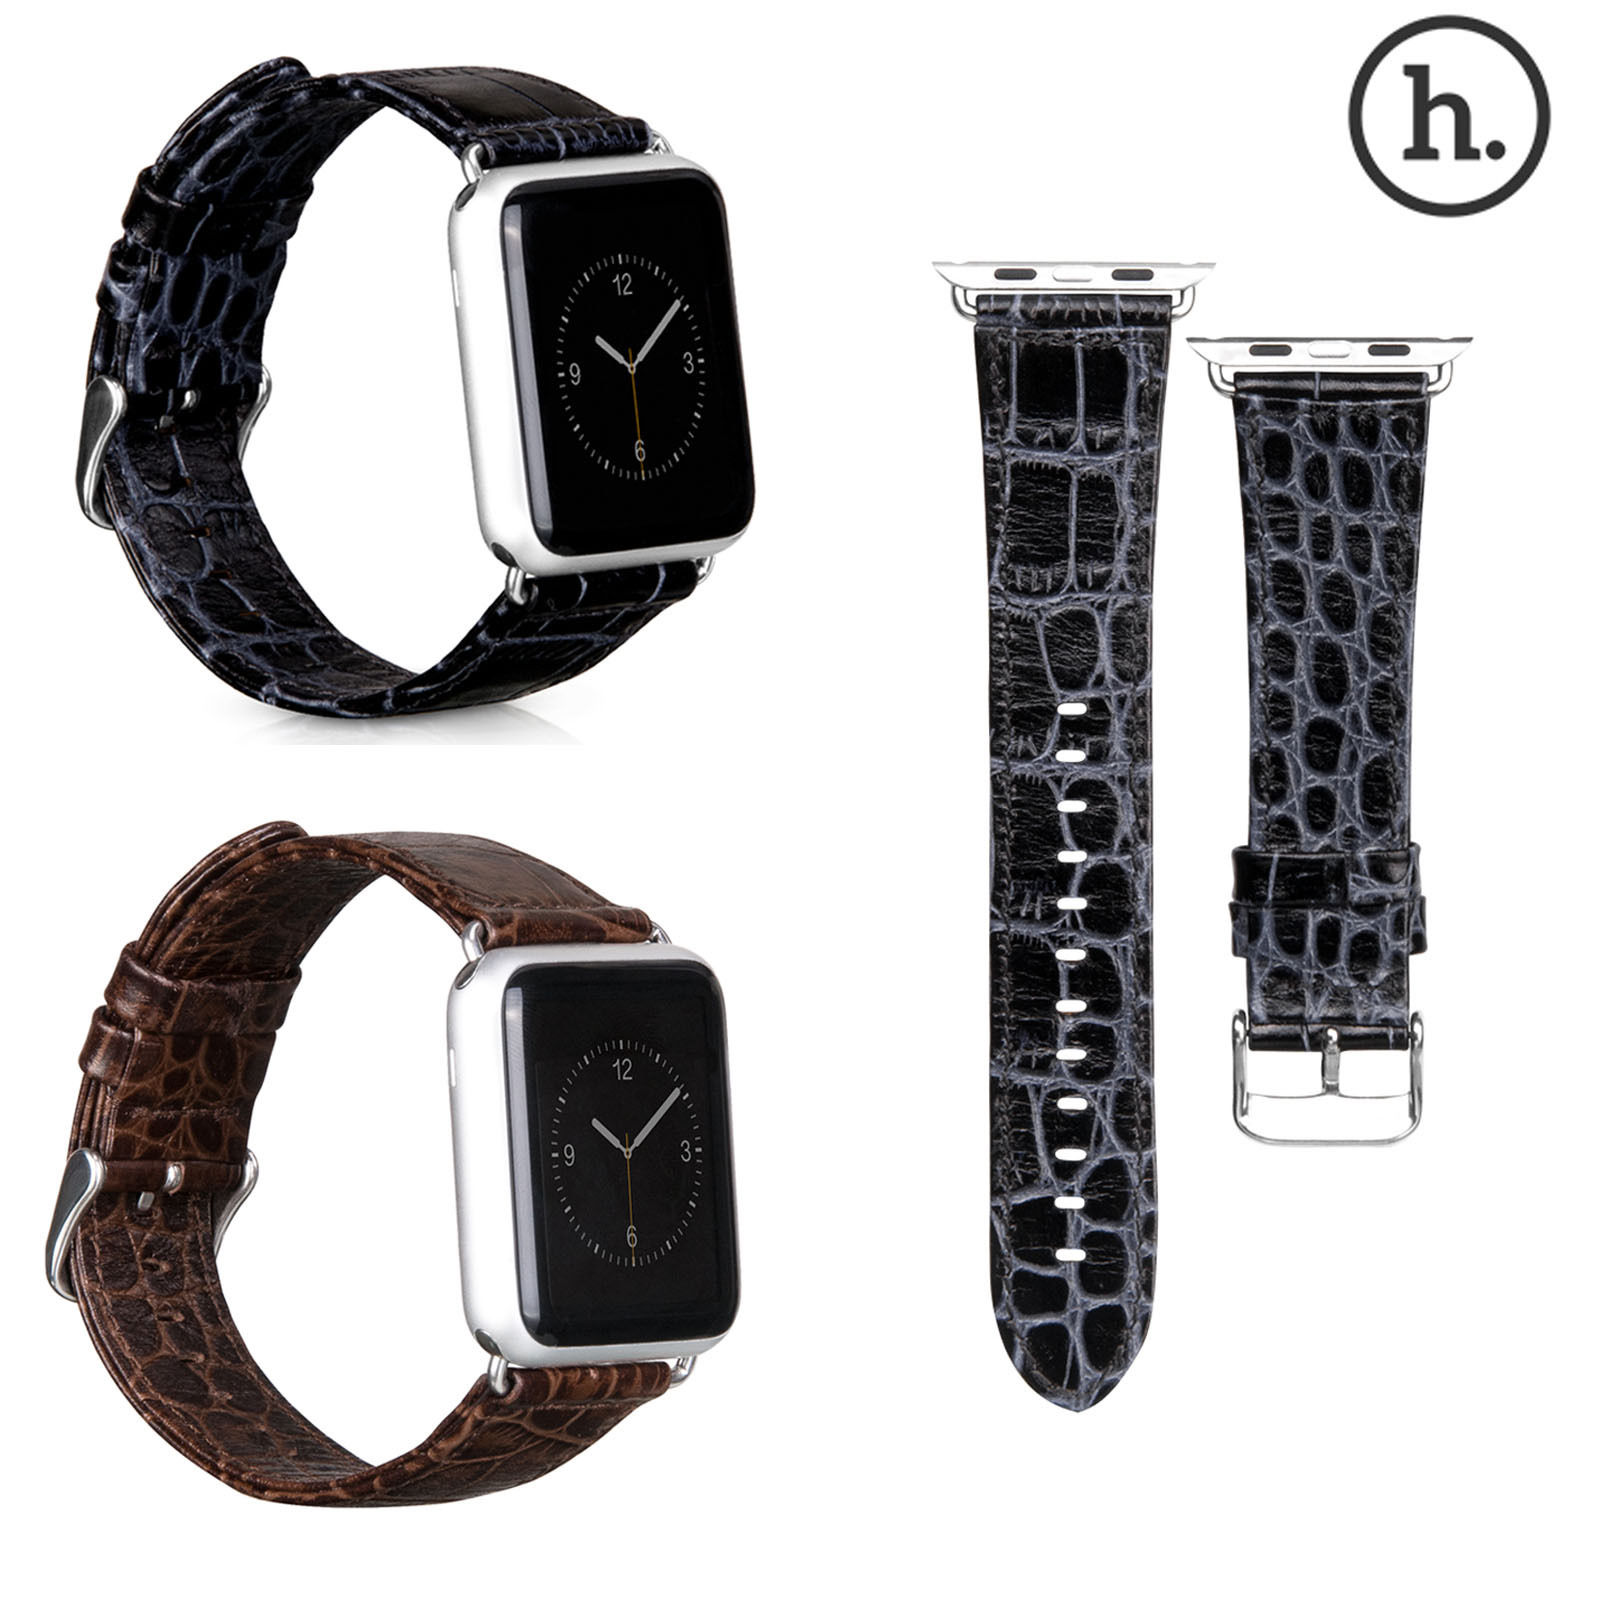 Original HOCO Crocodile Real Leather Strap Belt Classic Buckle Adapter Watch Band for Apple Watch Sport Edition 38mm/ 42mm(China (Mainland))